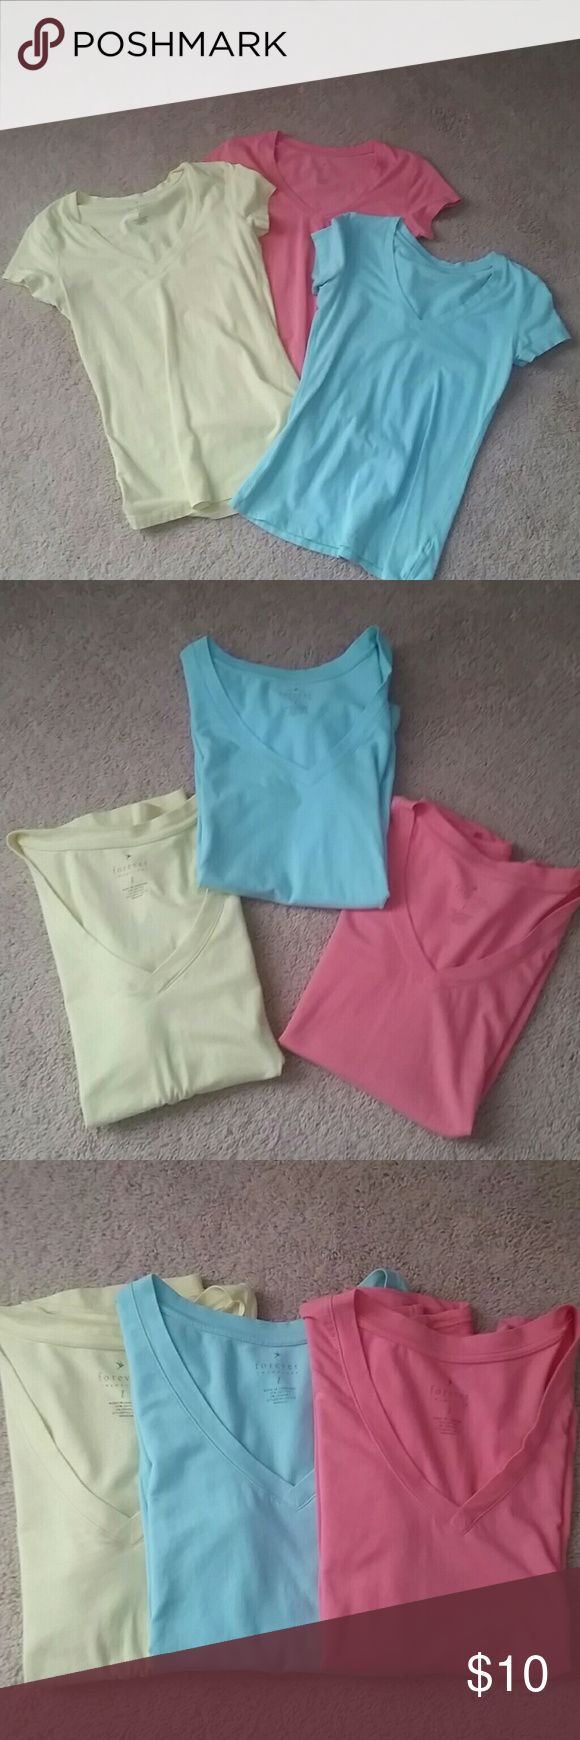 3 Forever 21 shirts Blue, yellow and pink Forever 21 basic tshirts. V-neck Short sleeve Large 95% cotton, 5%spandex Forever 21 Tops